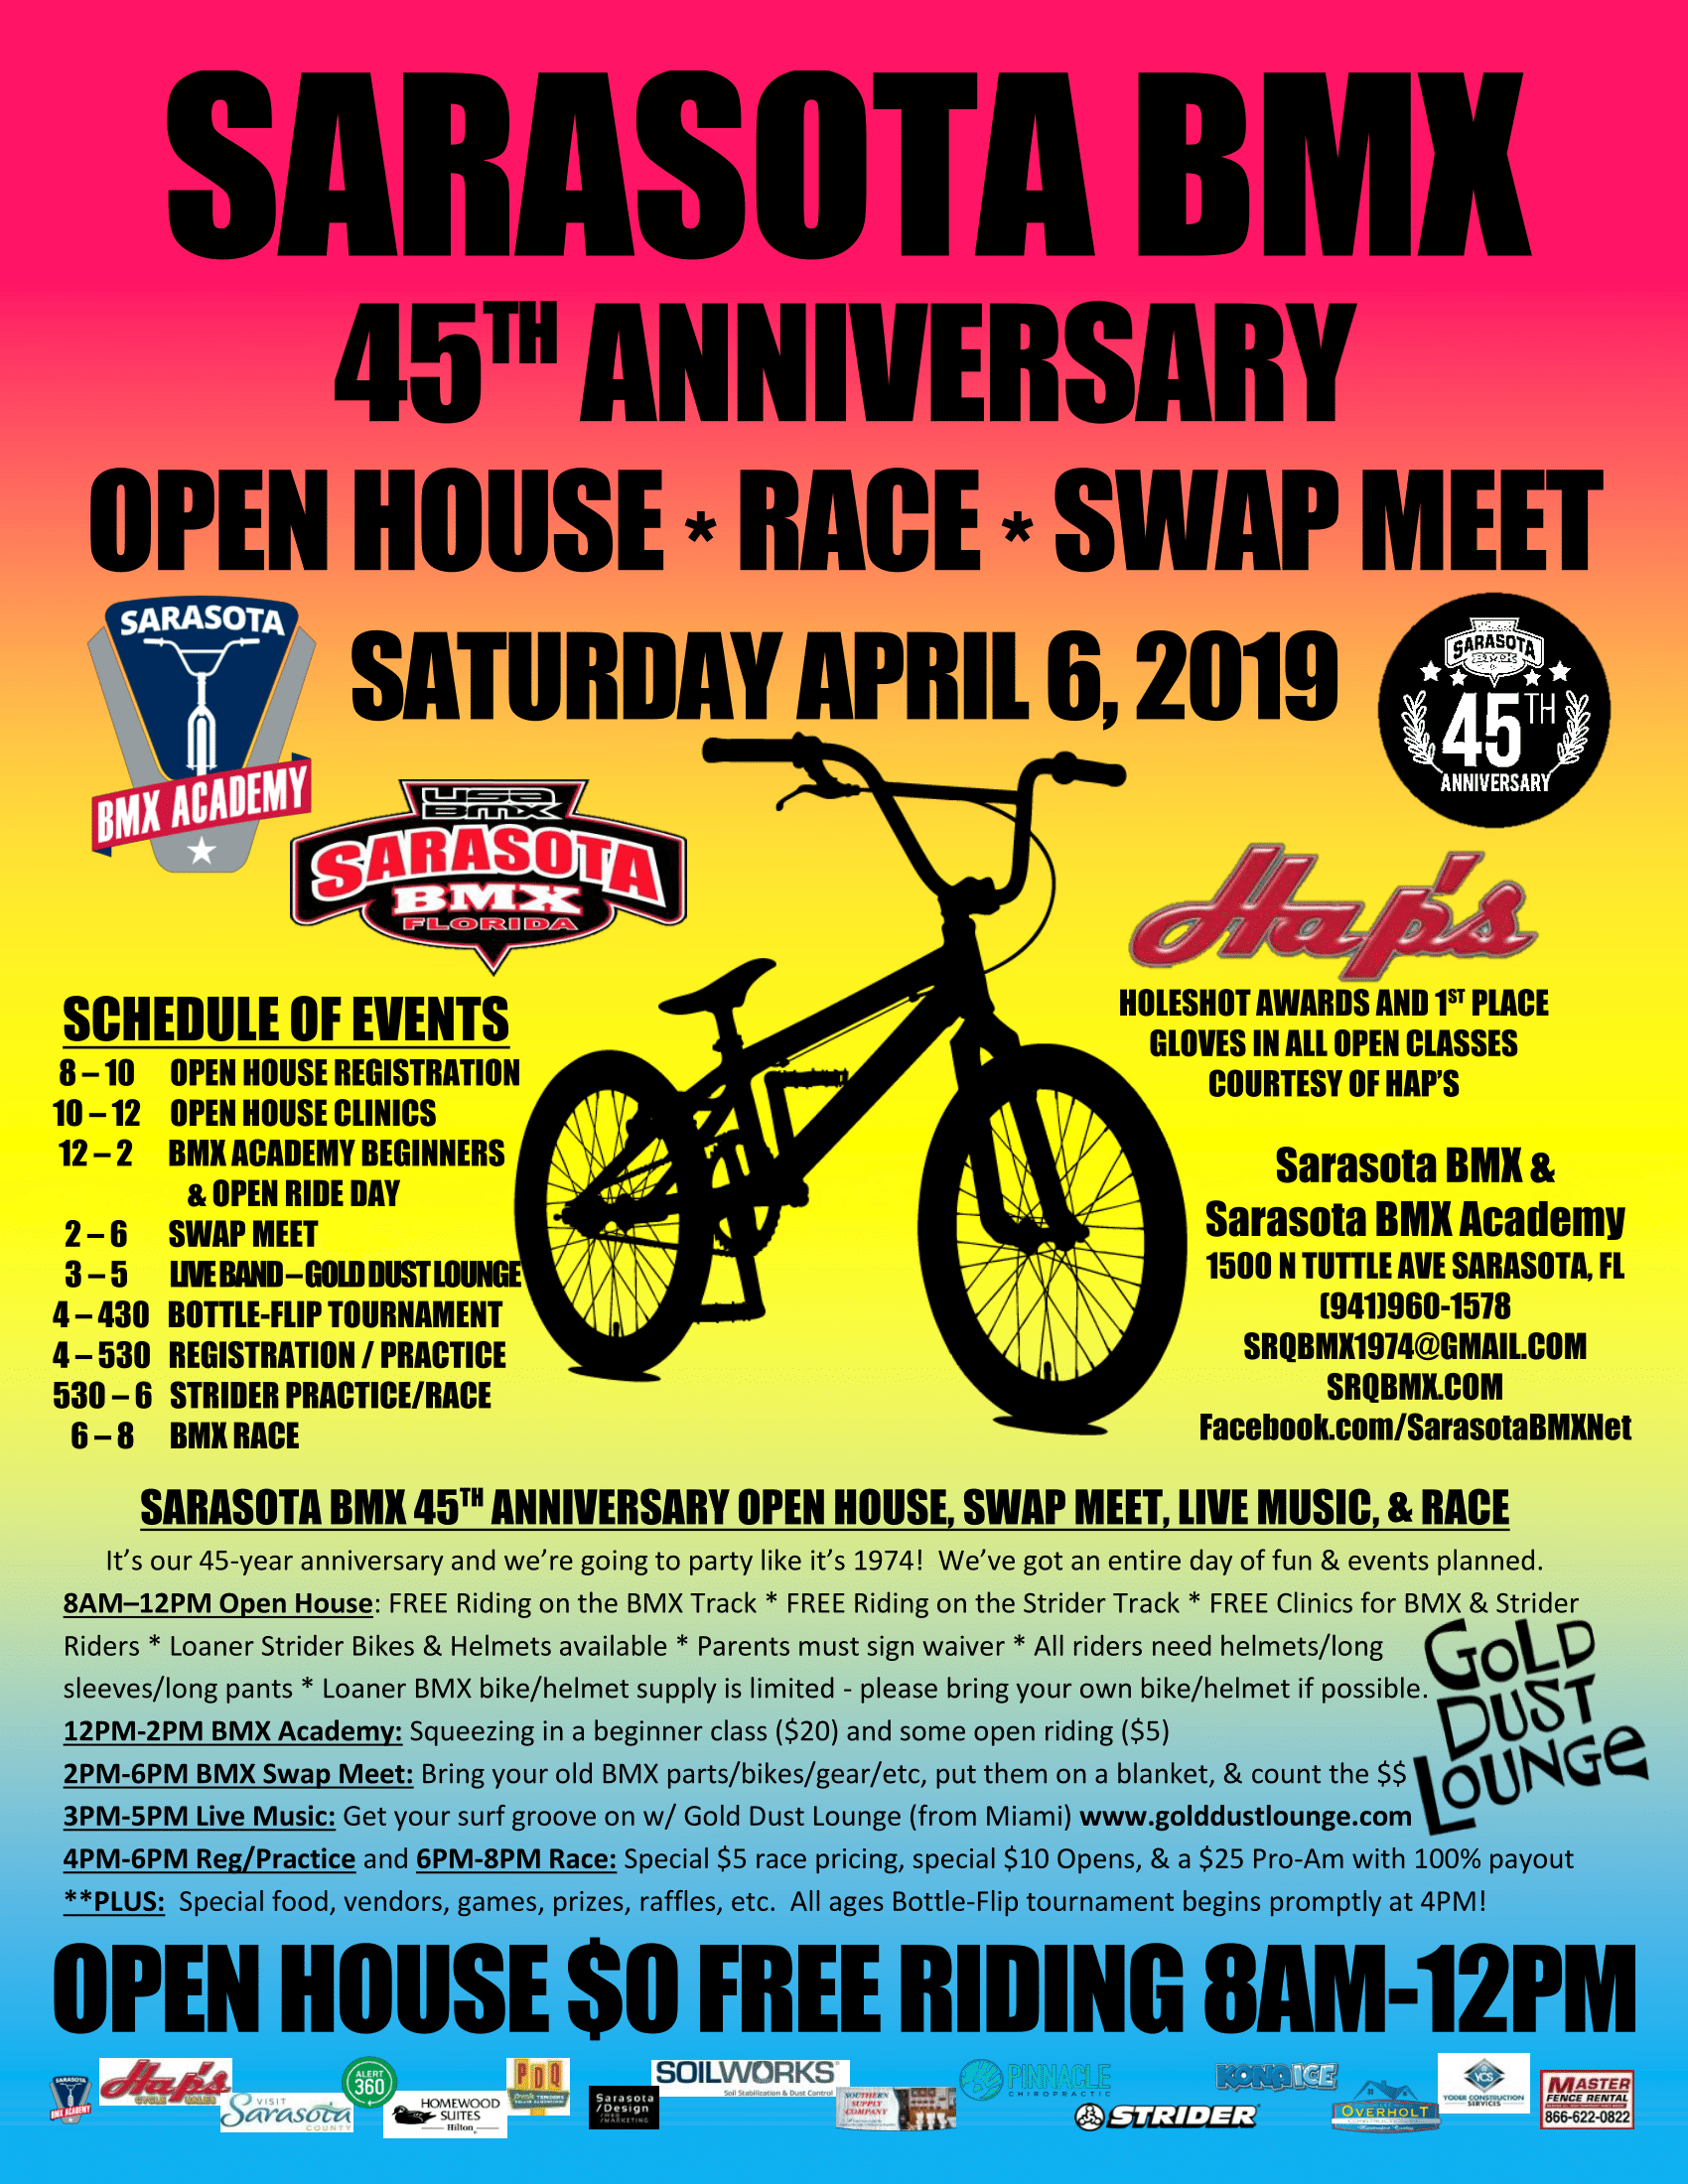 45th Anniversary Open House, Swap Meet, and Race